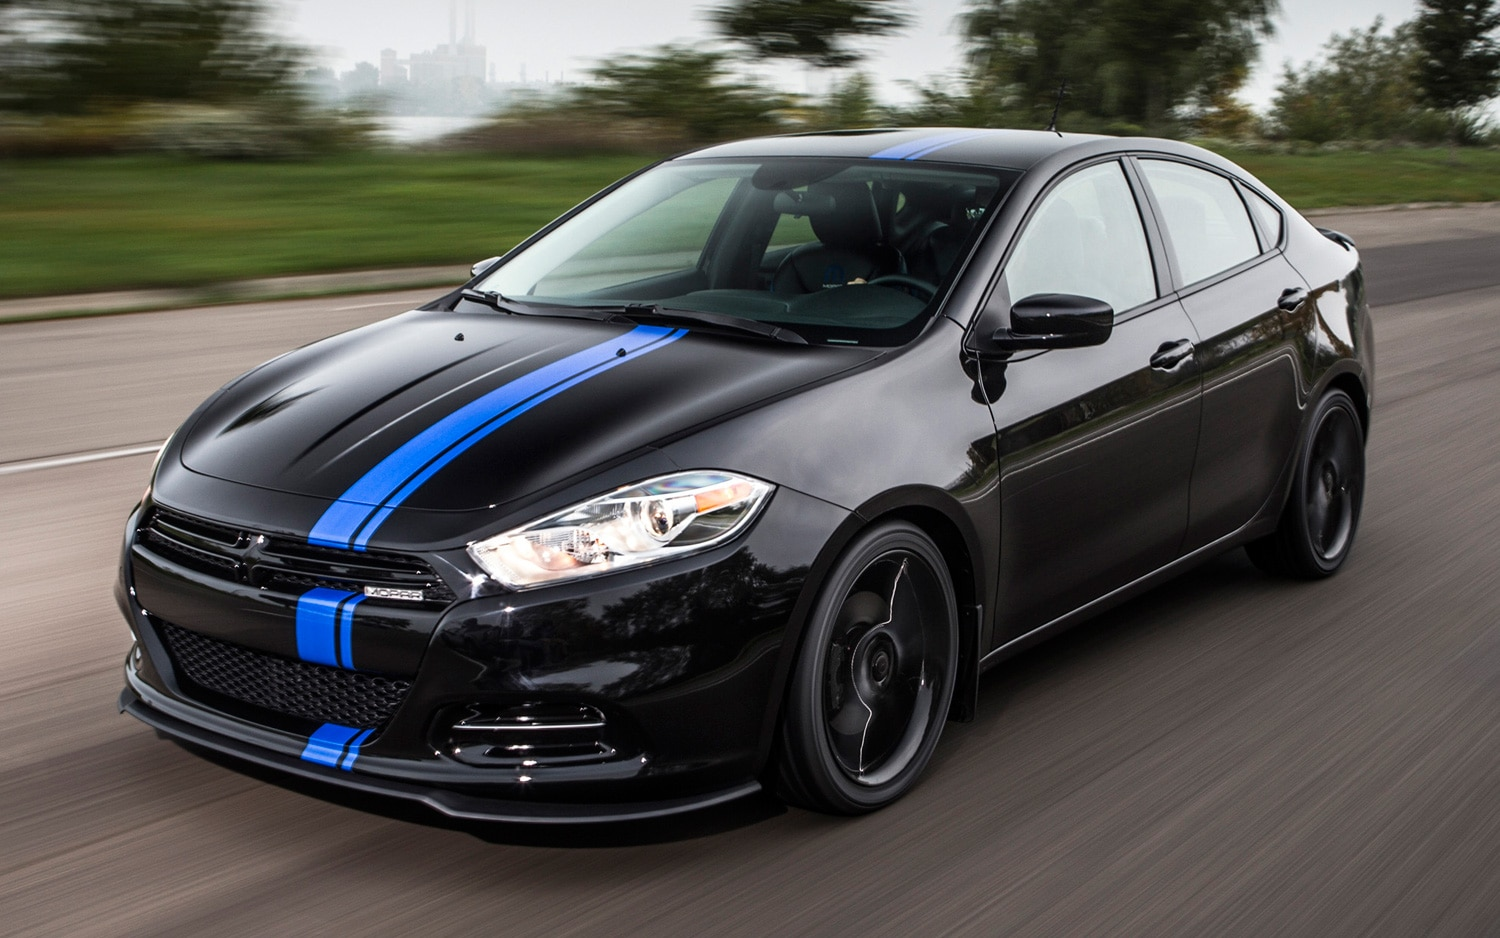 2013 Dodge Dart Mopar 13 Edition Front View In Motion1